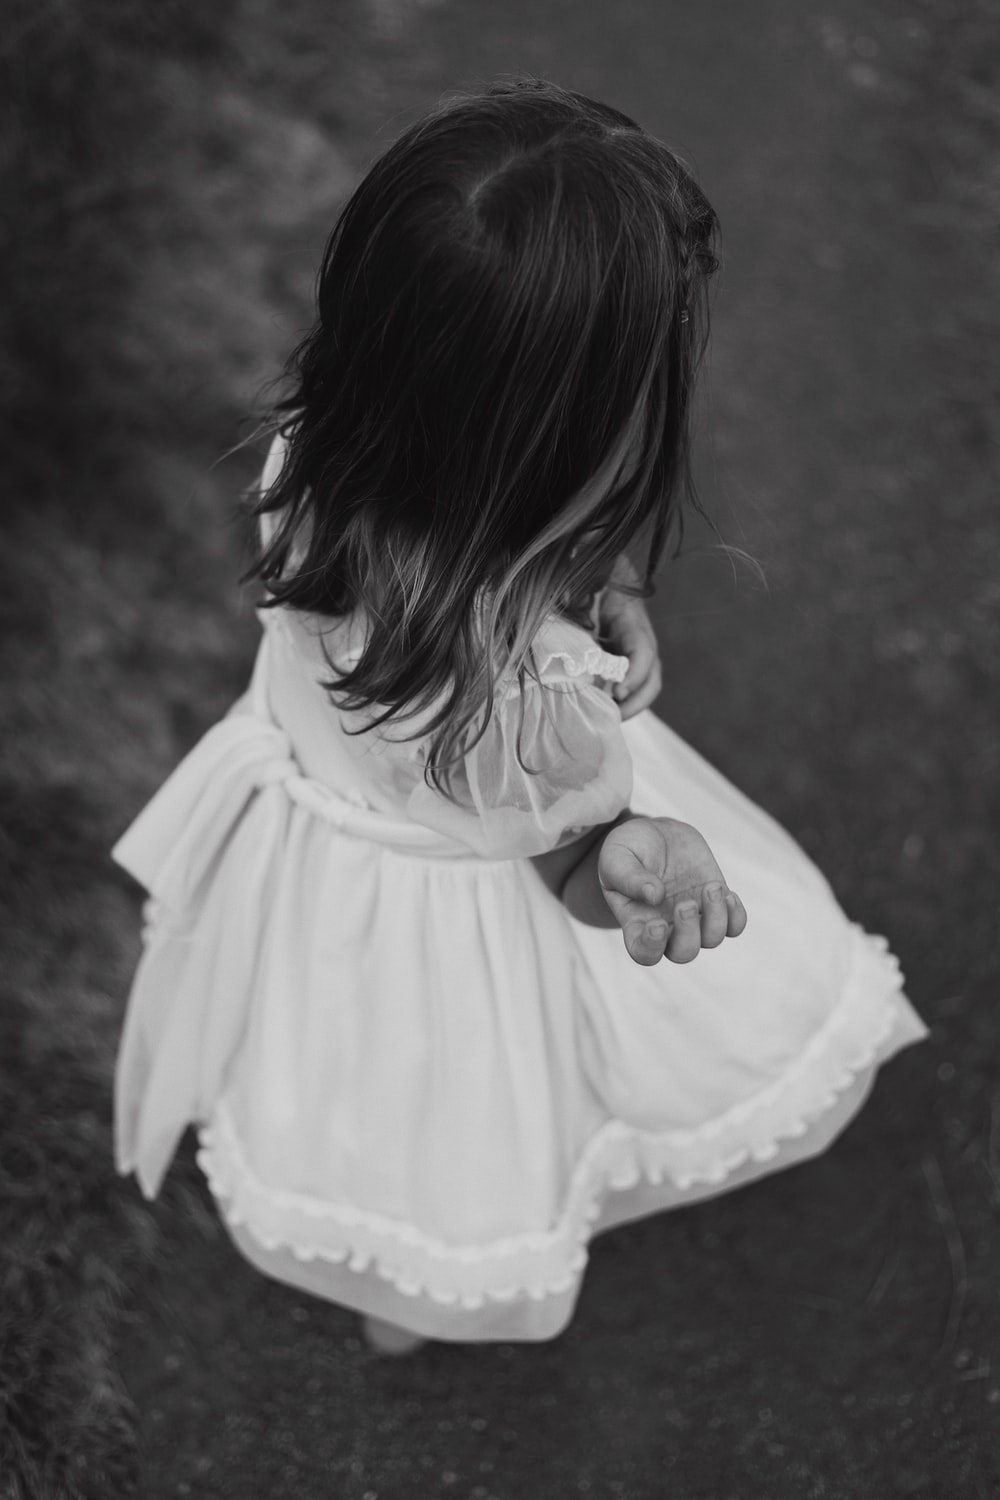 grayscale photography of child wearing dress standing while facing back